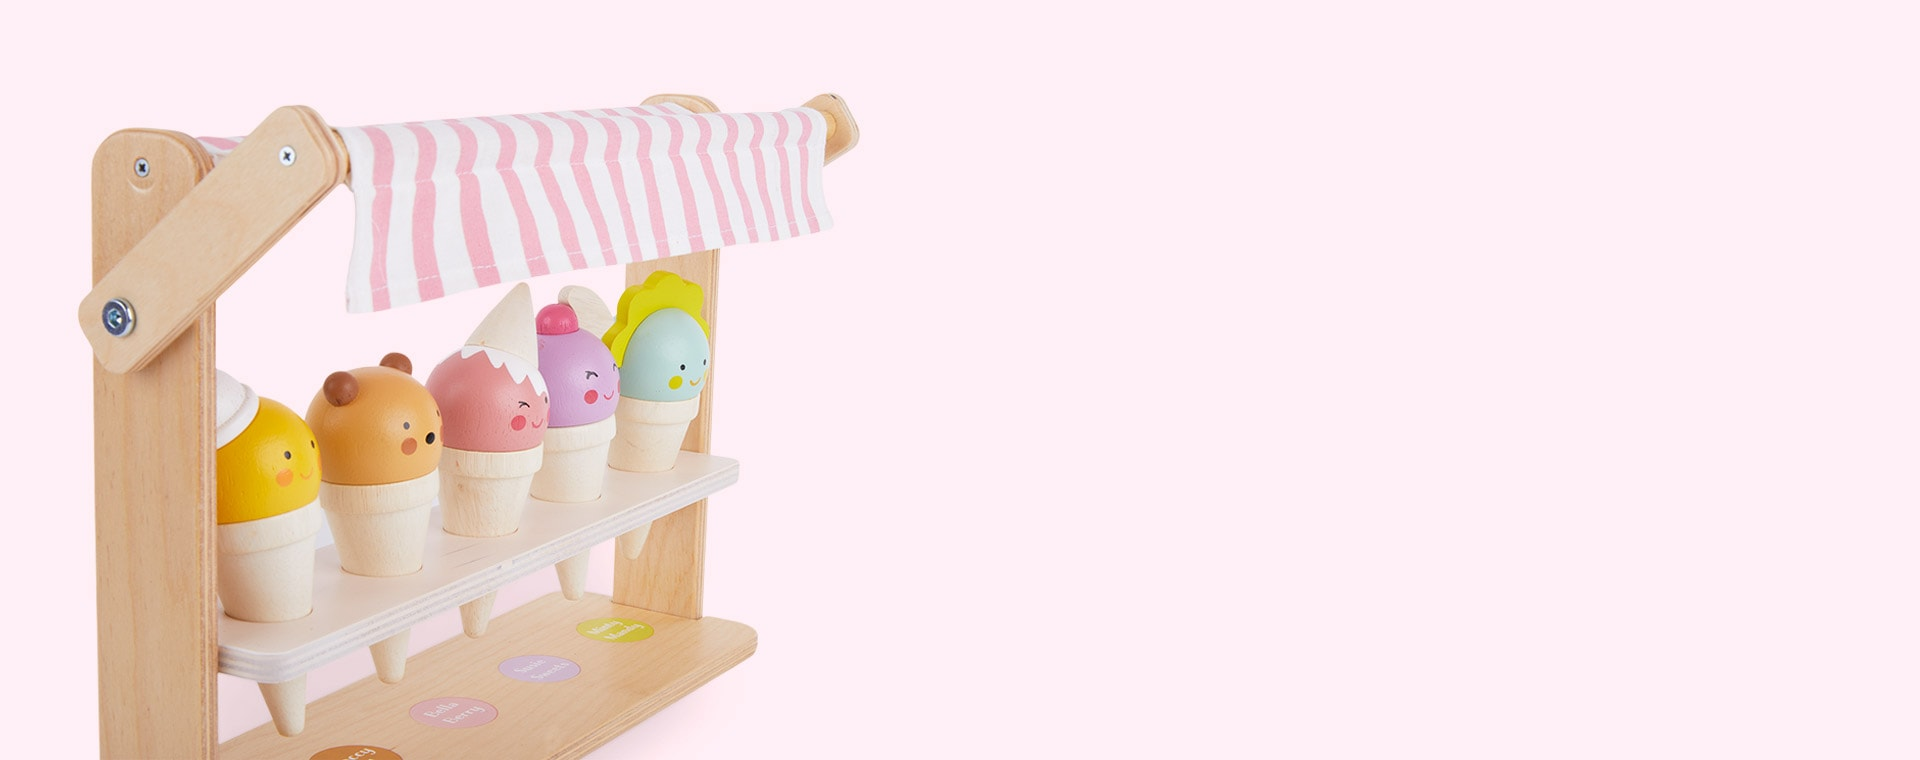 Multi Tender Leaf Toys Scoops And Smiles